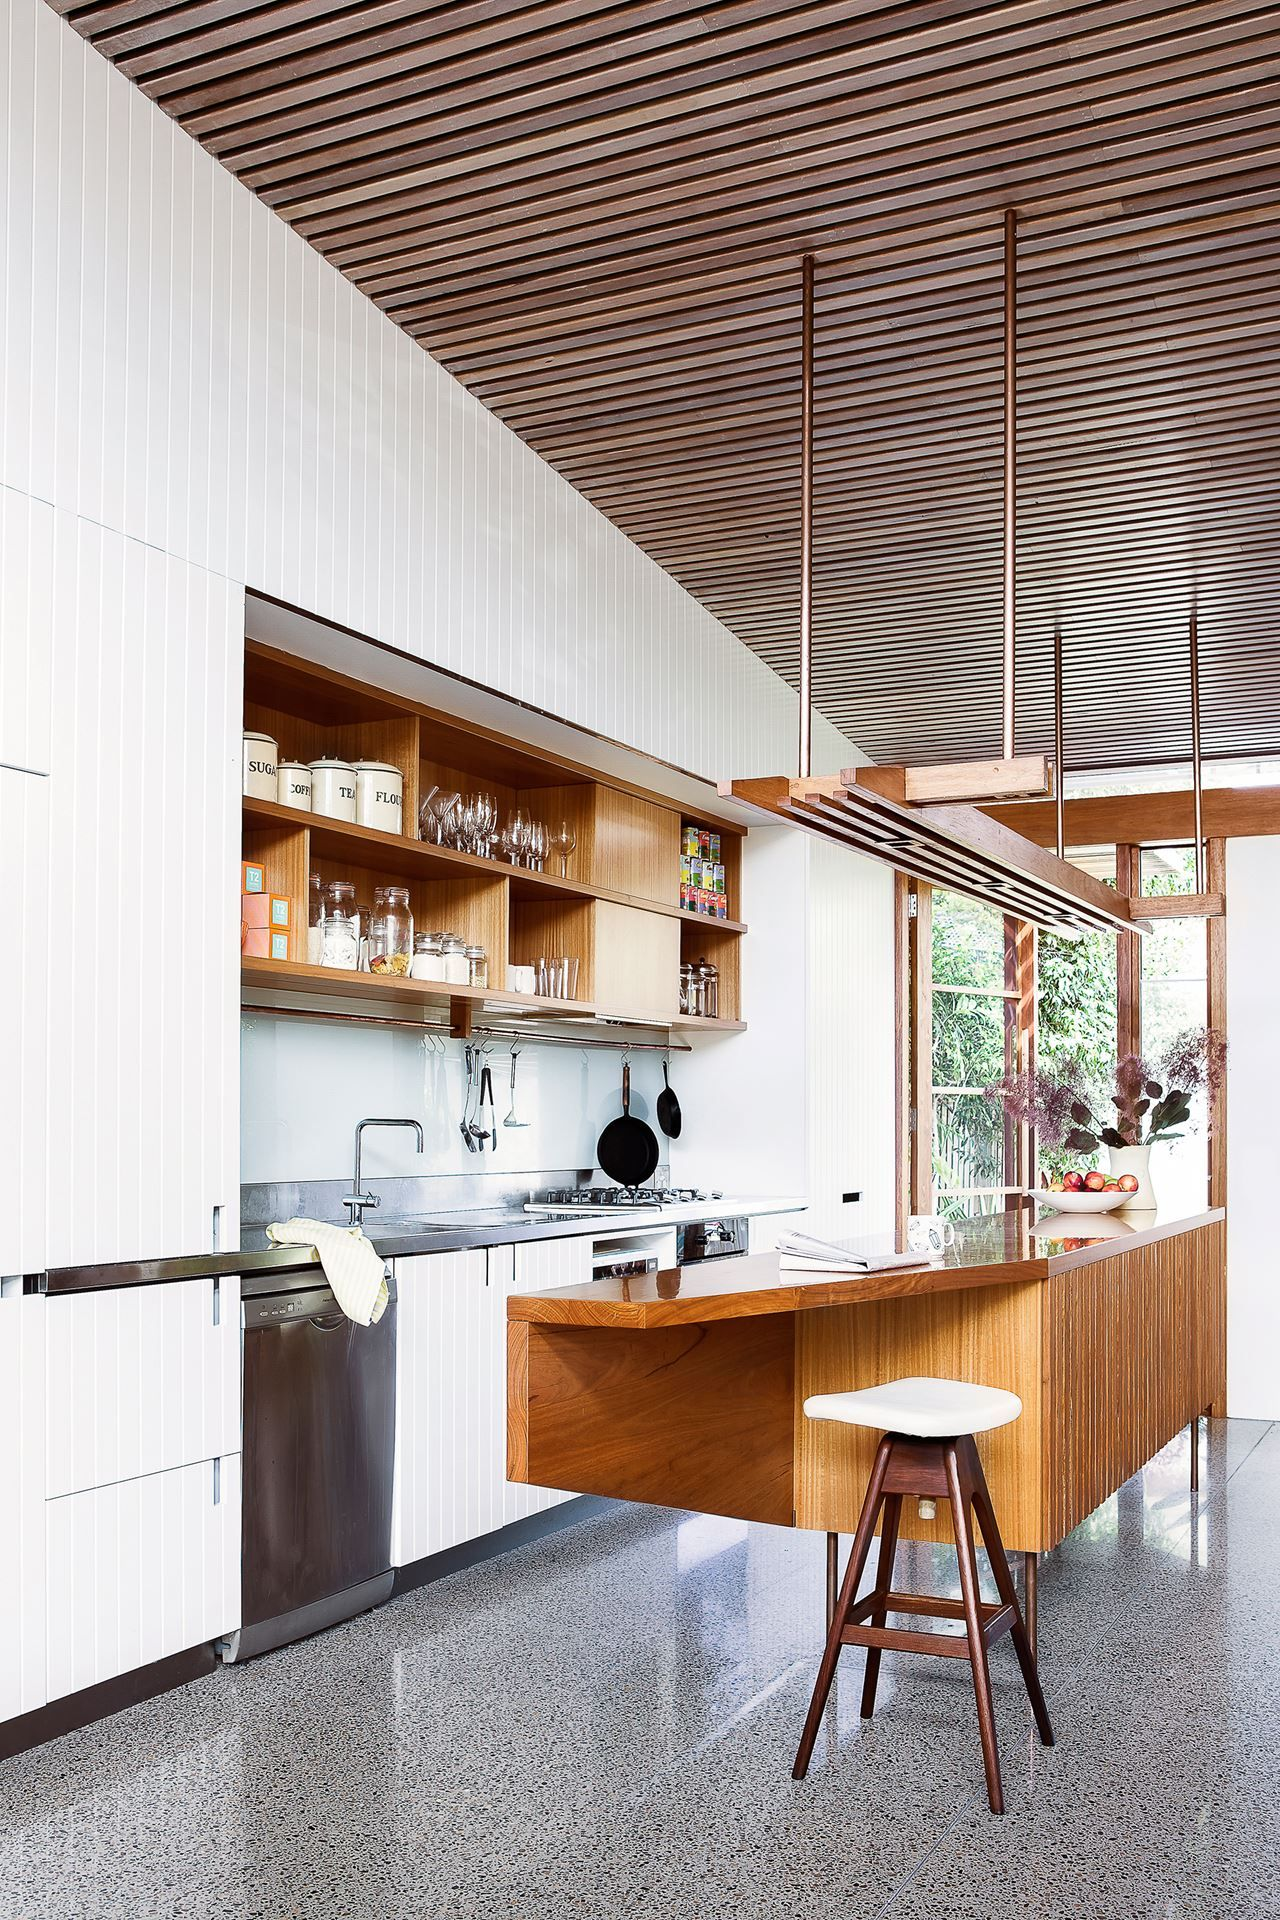 Kitchen Cabinets To Ceiling With Glass Kitchen Blackbutt Timber Ceiling Battens White Cabinets